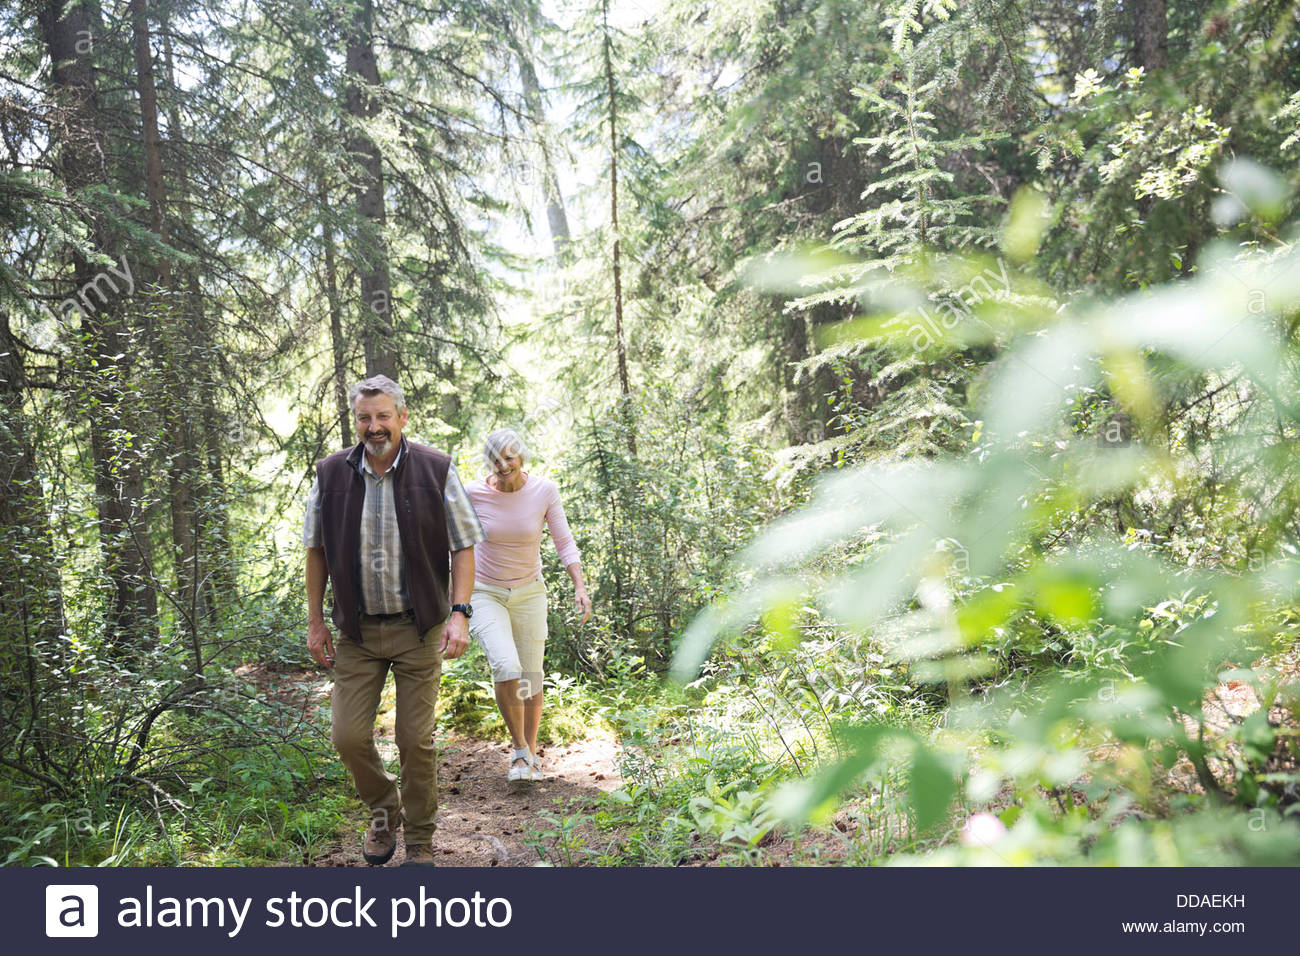 Mature couple hiking through forest - Stock Image